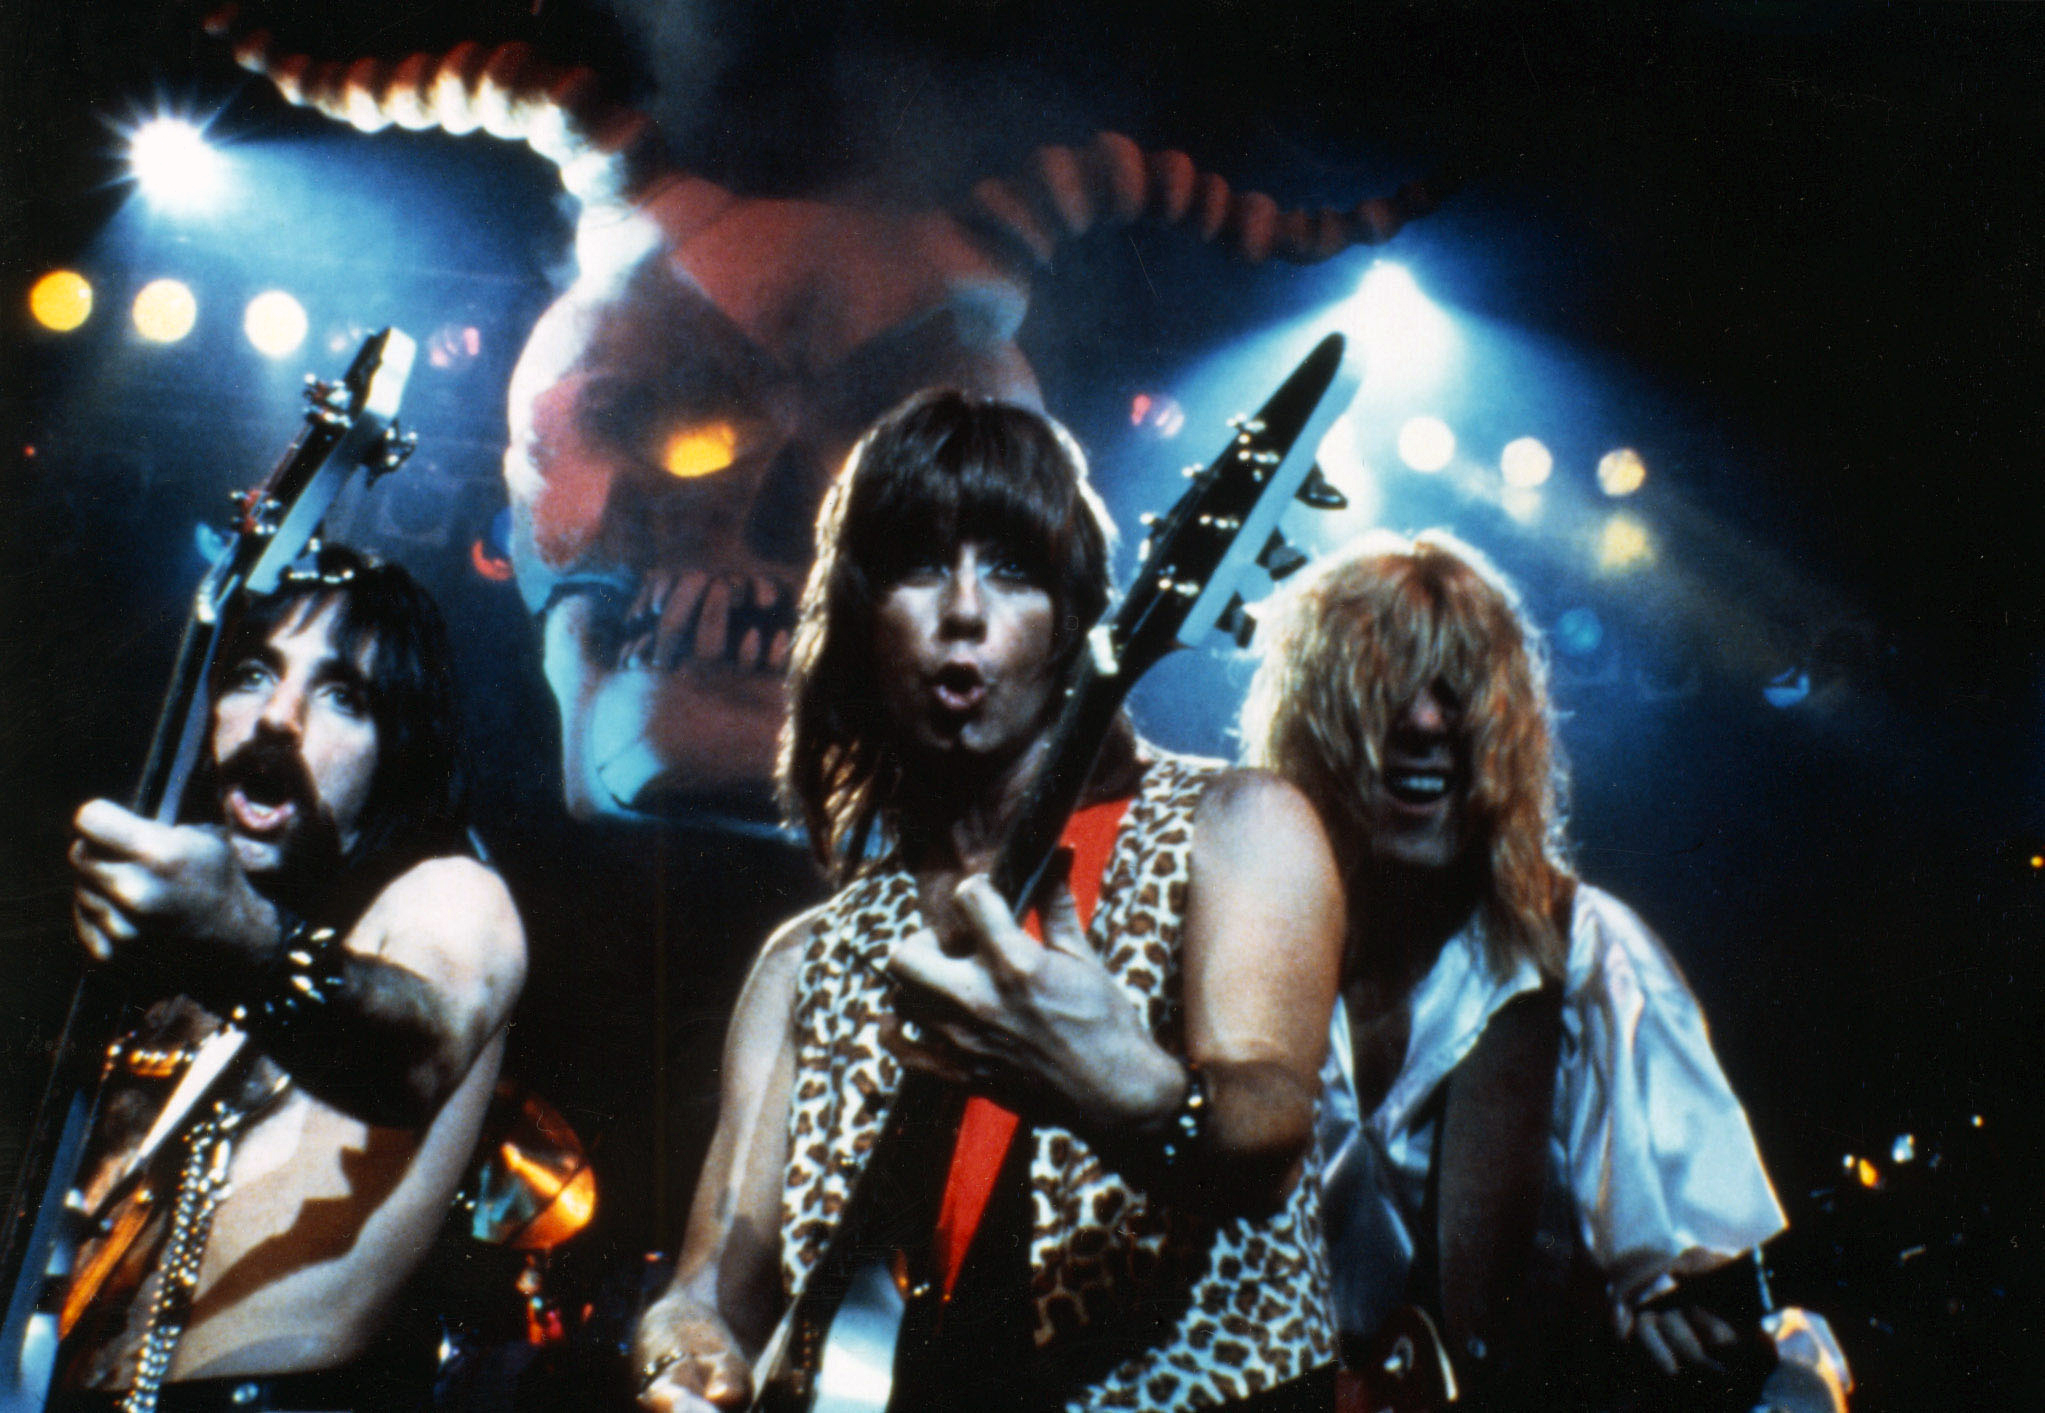 Spinal Tap': Judge Allows $400 Million Lawsuit to Proceed